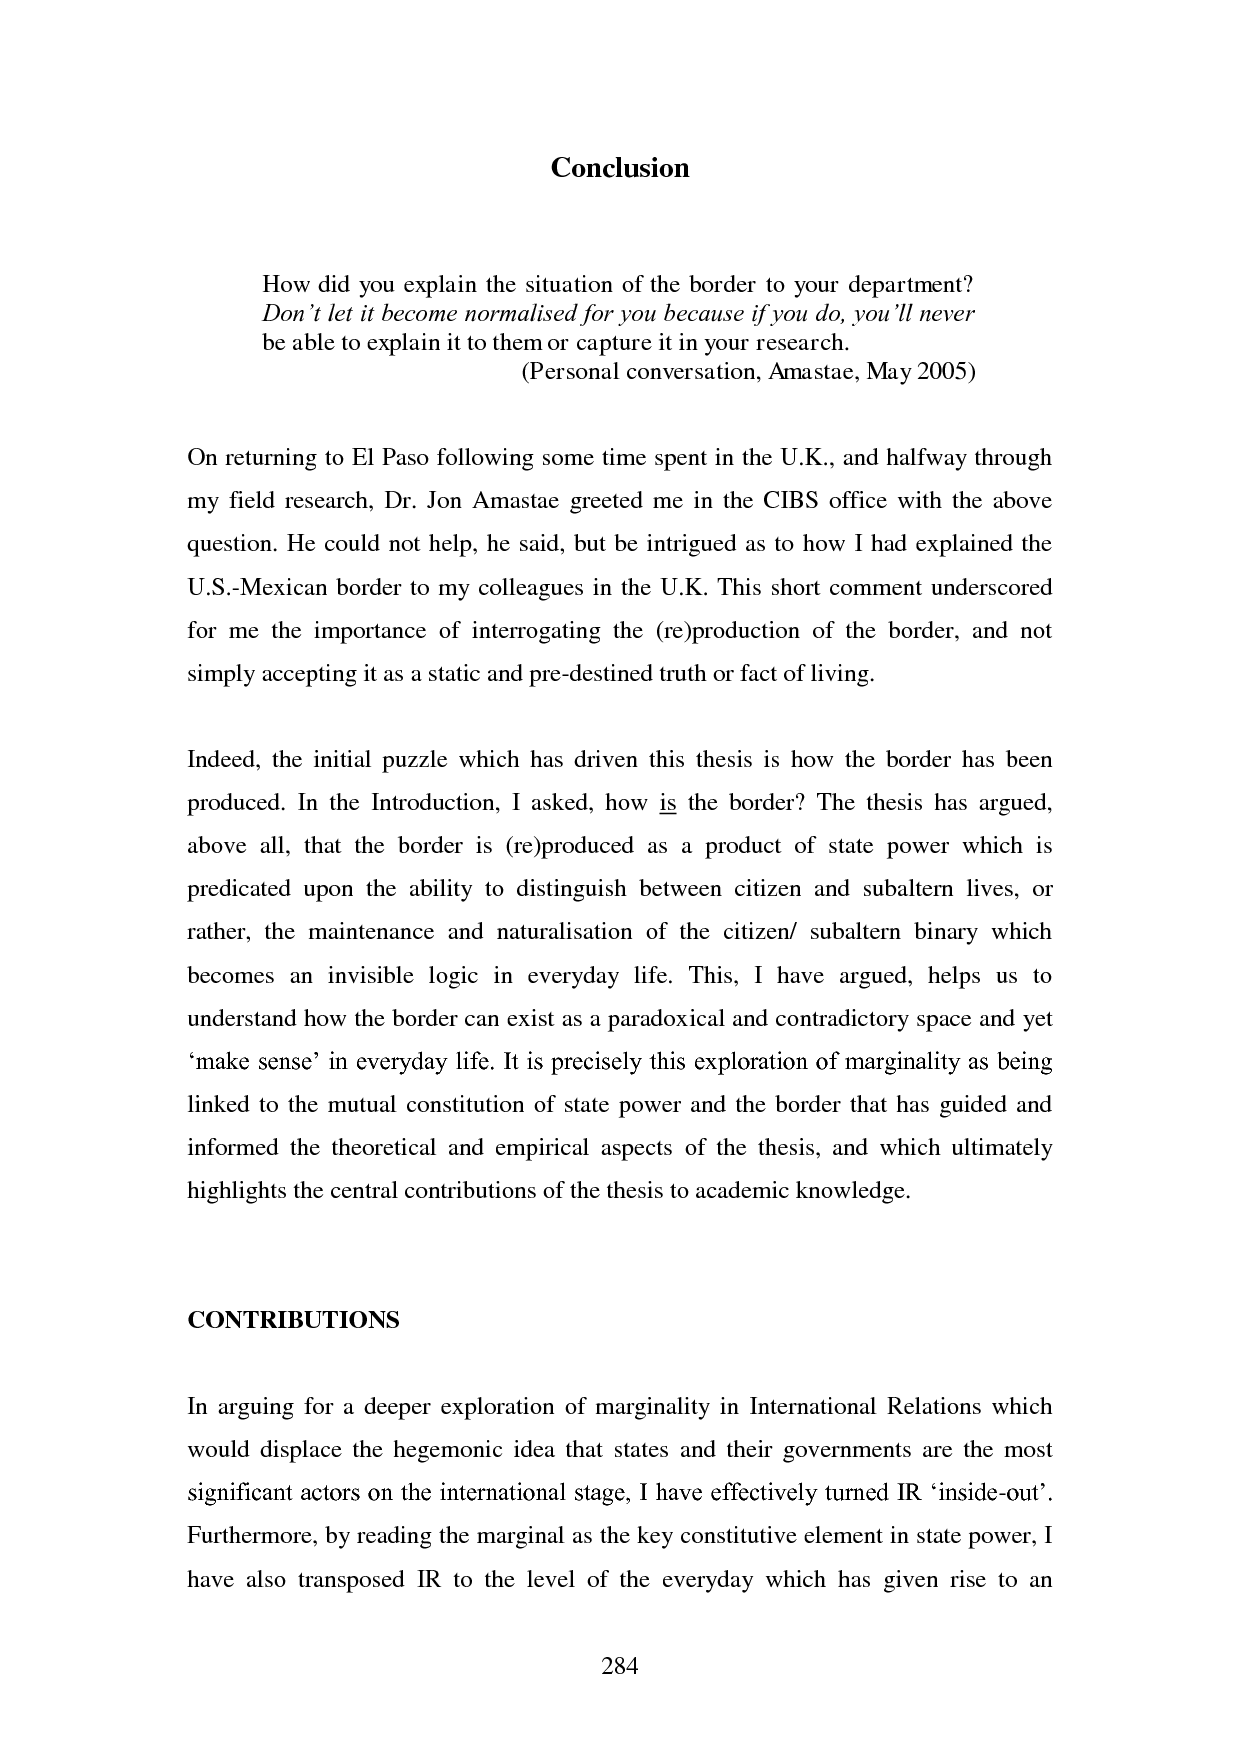 001 Wa6hdq3tia Research Paper Sample Unforgettable A Pdf Writing And Publishing Scientific In Political Science Lisa Baglione About Education Full